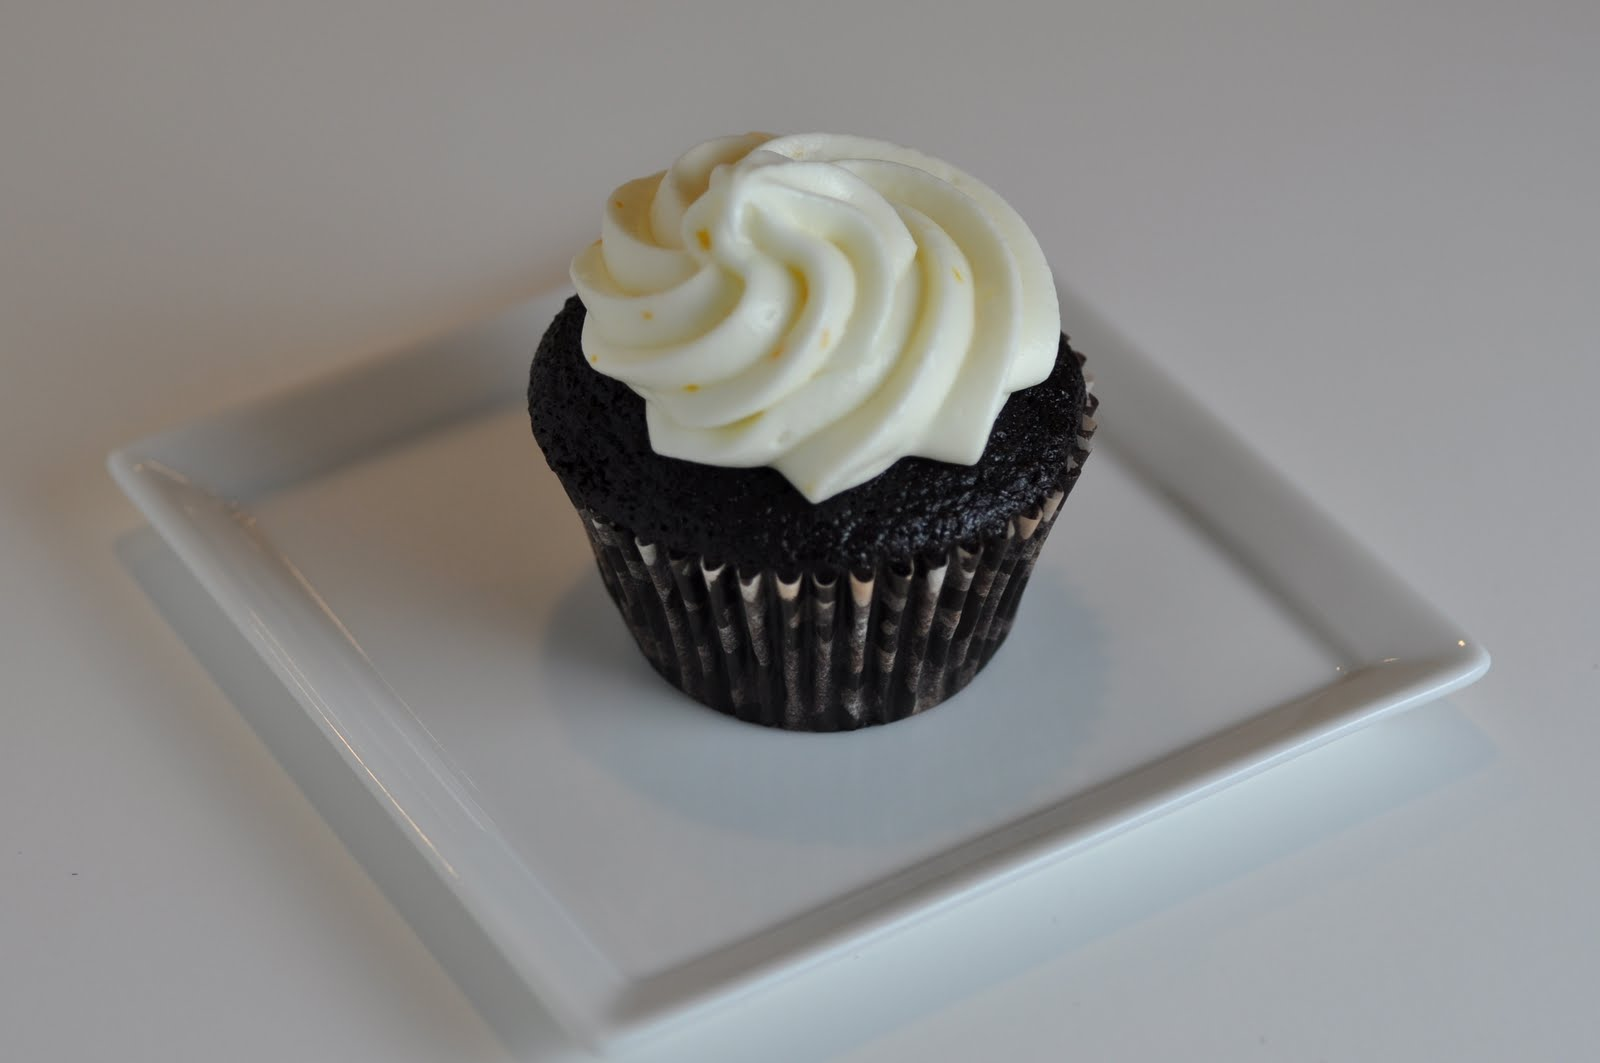 ... Delicious: Chocolate Cupcakes with Orange Cream Cheese Frosting